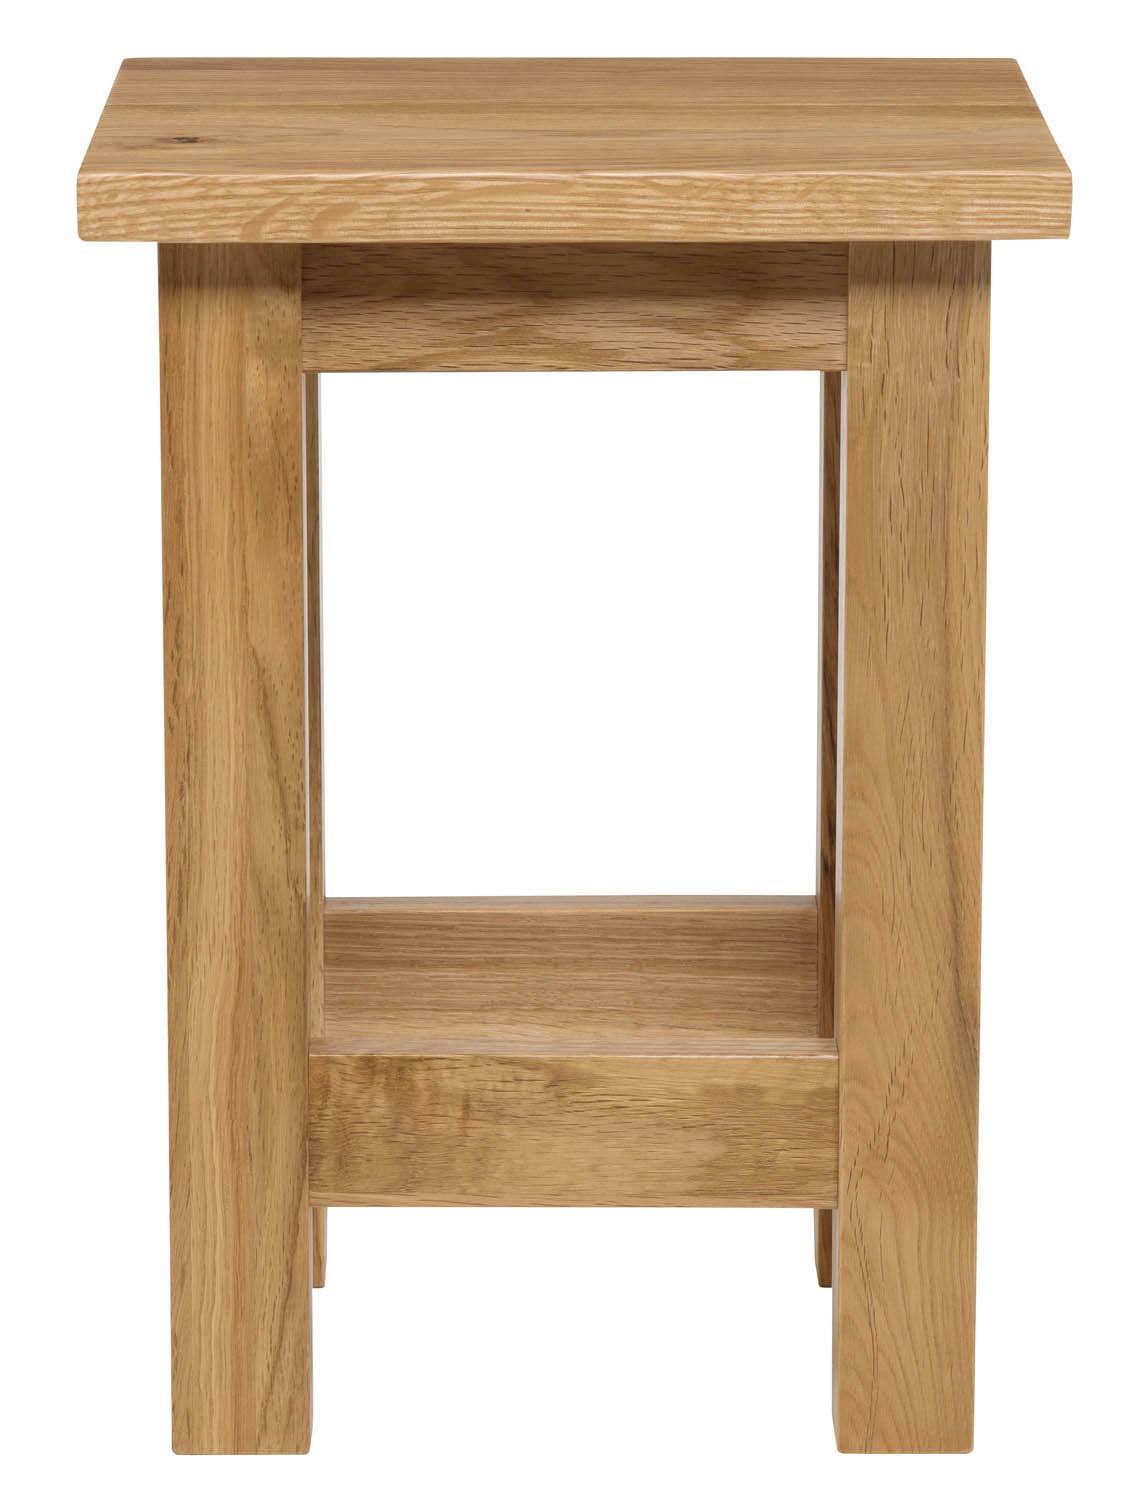 Charmant Waverly Oak Small Occasional Table